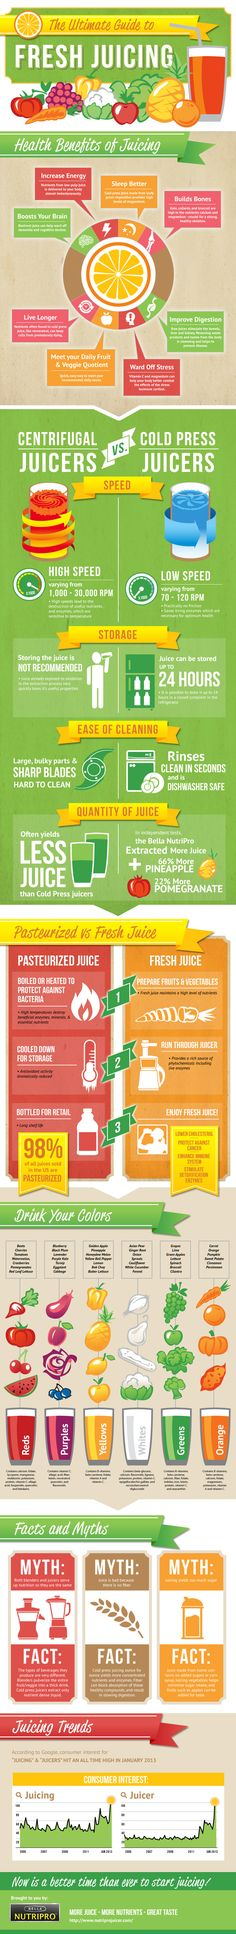 Ultimate Guide to Juicing. SO perfect for beginners. Has all kinds of information about juicing, how long to keep your juice, etc. So helpful!